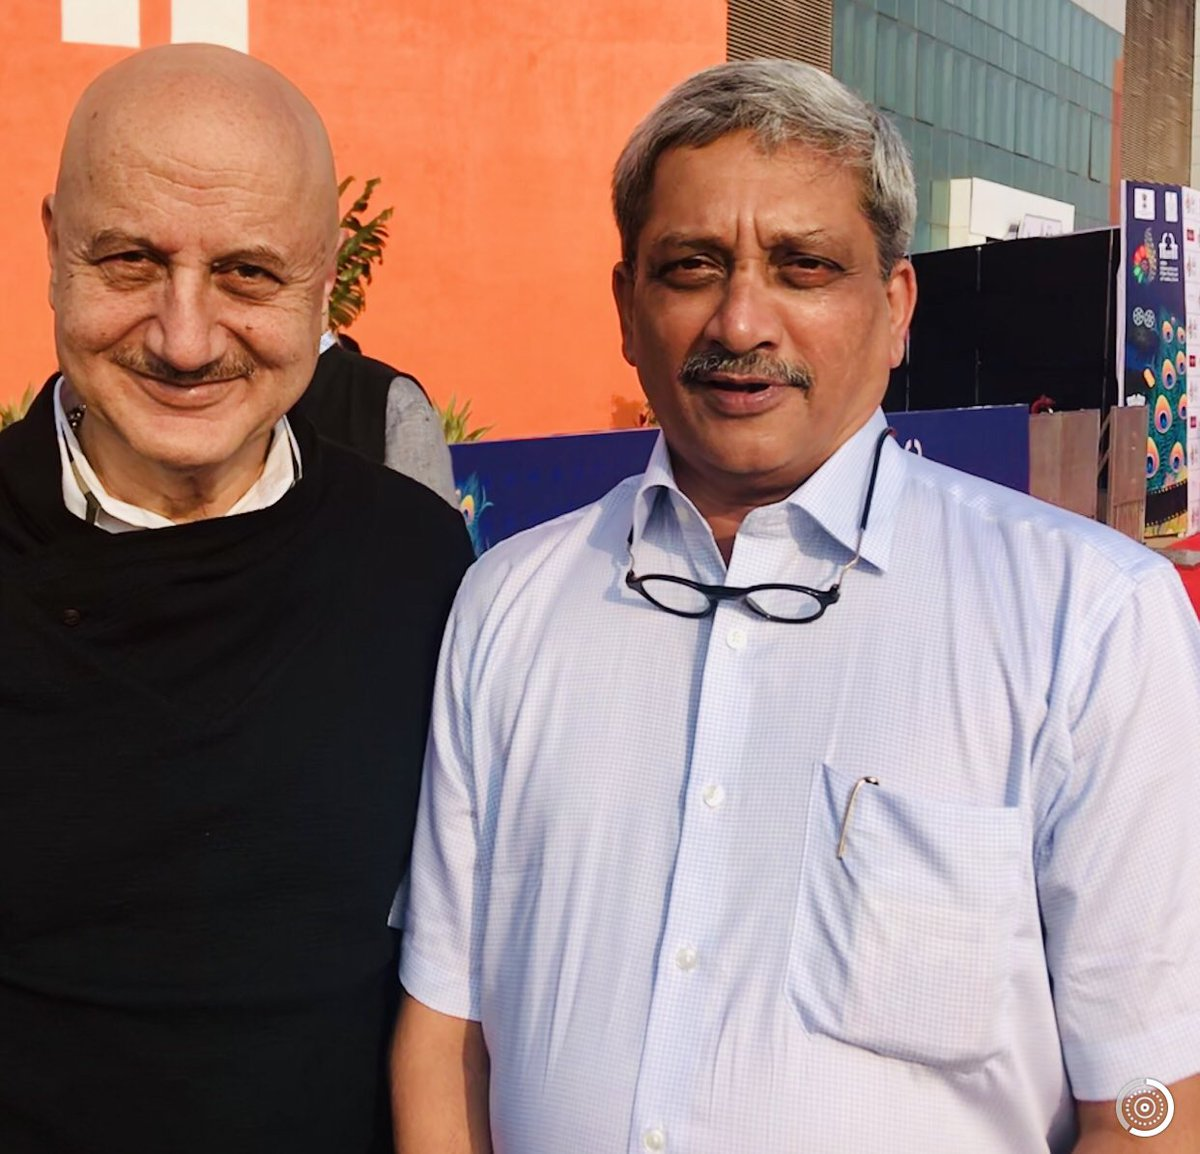 Deeply deeply saddened to know about the untimely demise of Shri #ManoharParrikar ji. He was one of the most real, dignified, intelligent, warm, down-to-earth & honest person I had met. He had a great quality of inspiring people so effortlessly. Will miss him. Om Shanti.🙏